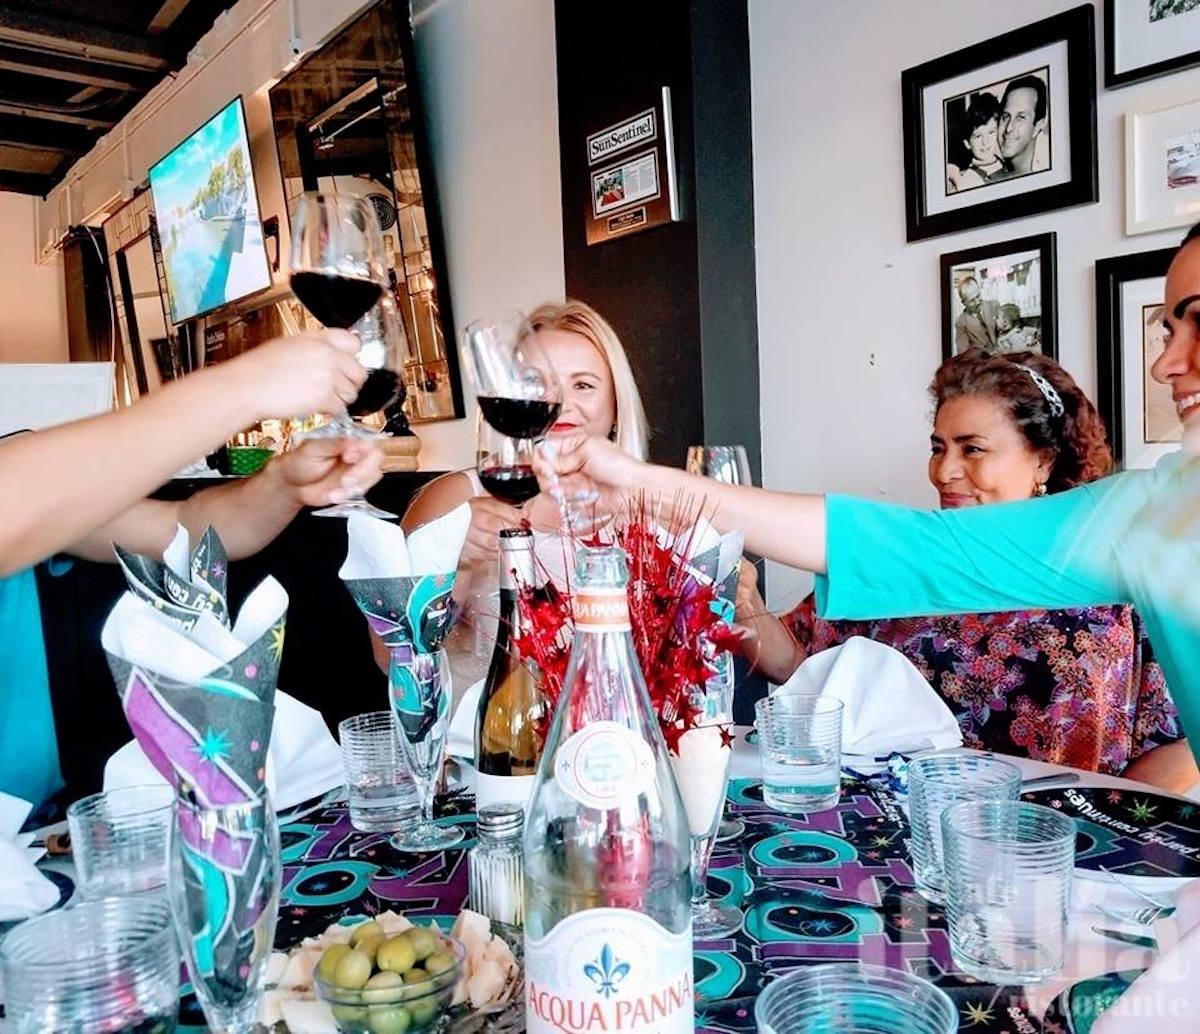 Fort lauderdale events private parties